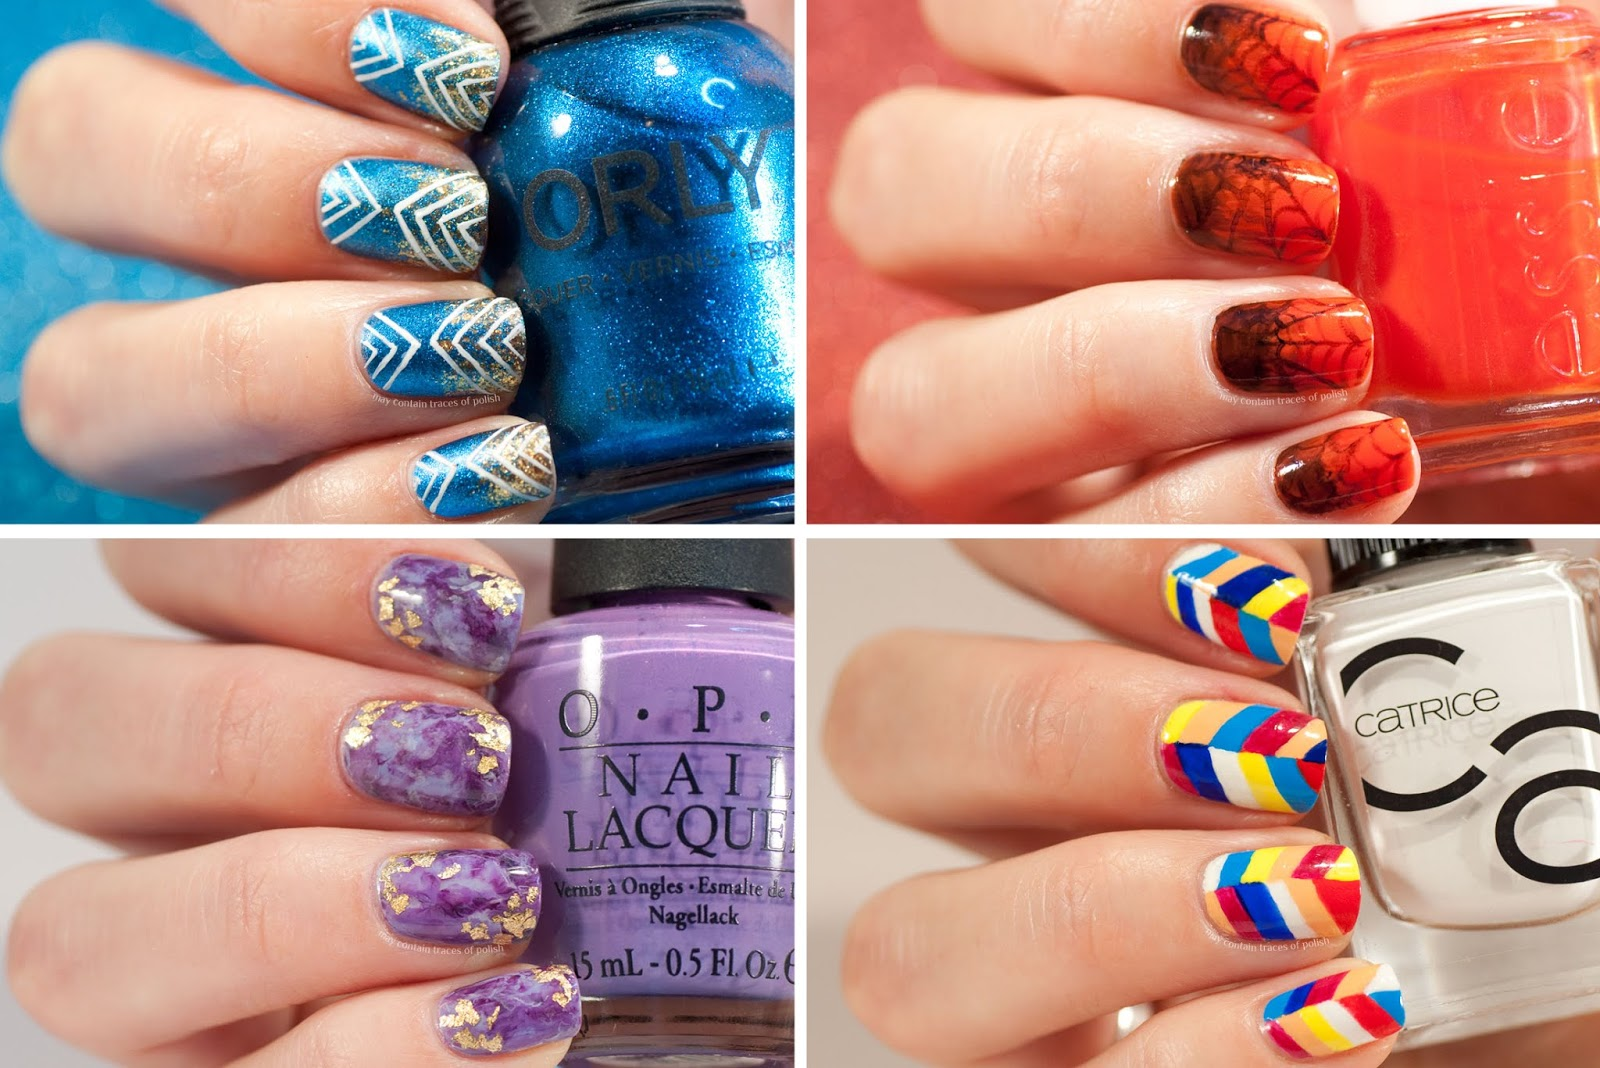 31 Day Challenge: All nail art summary post